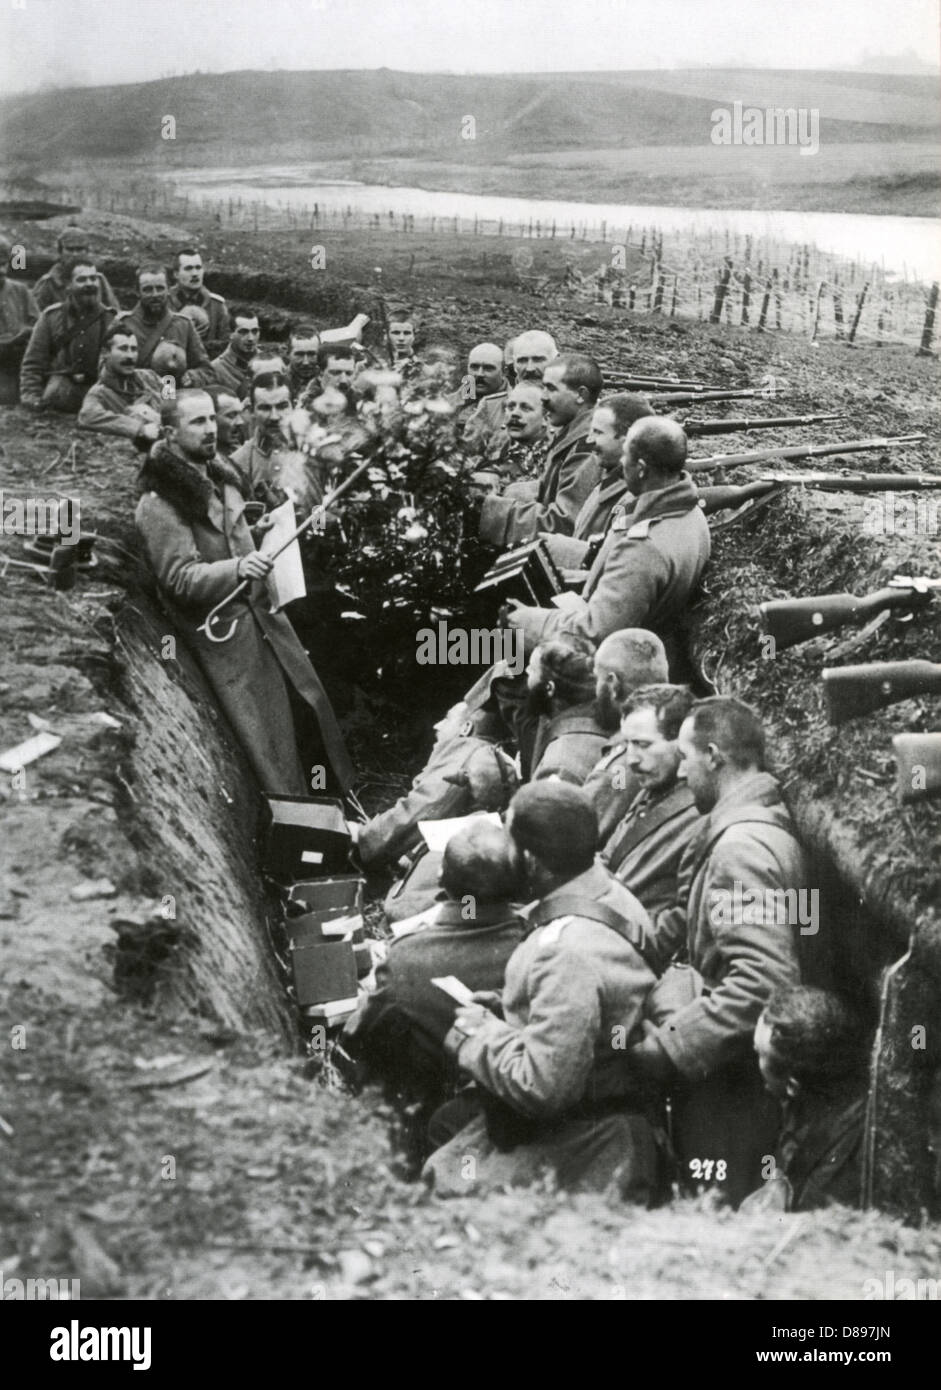 Christmas Truce Of 1914.Christmas Truce 1914 German Troops Take Advantage Of The